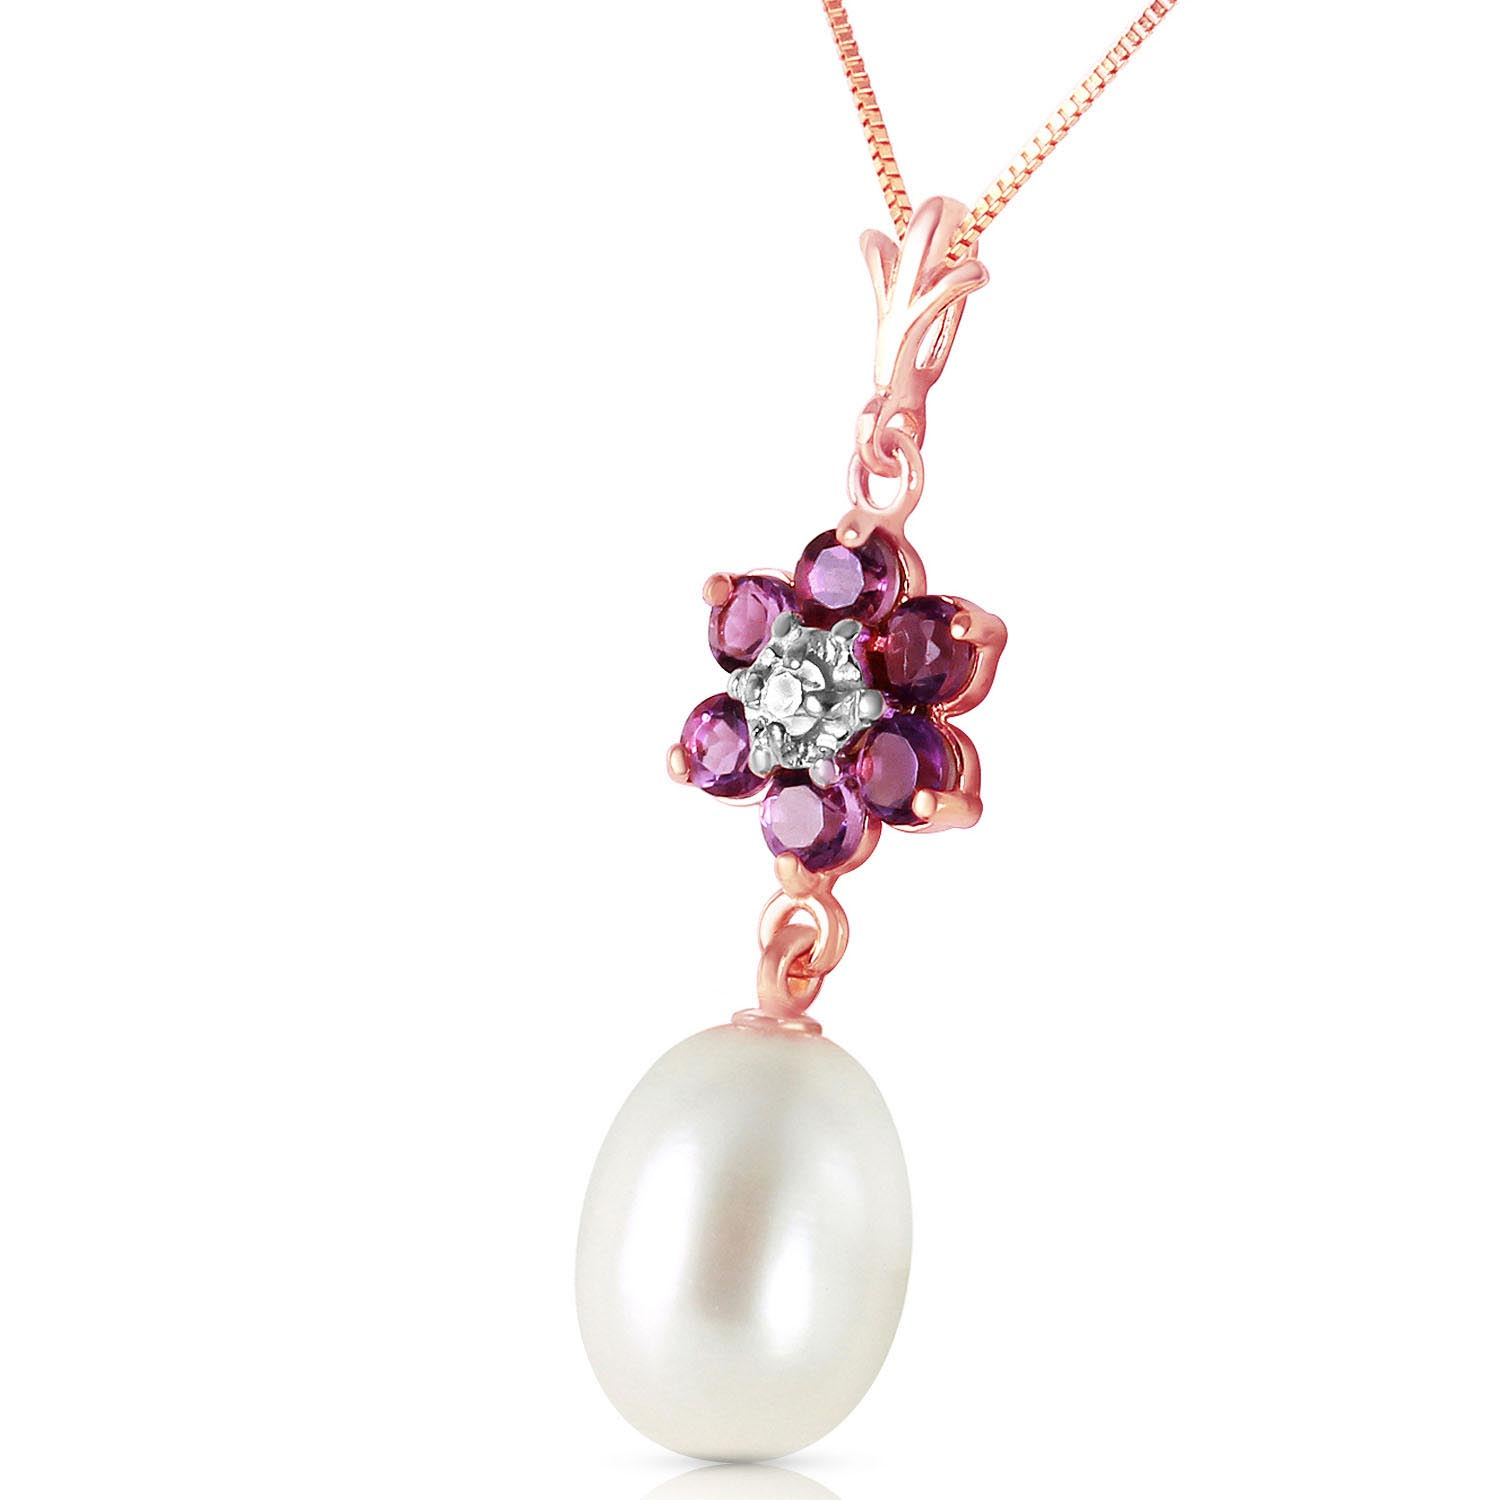 Pearl, Amethyst and Diamond Daisy Pendant Necklace 4.5ctw in 9ct Rose Gold